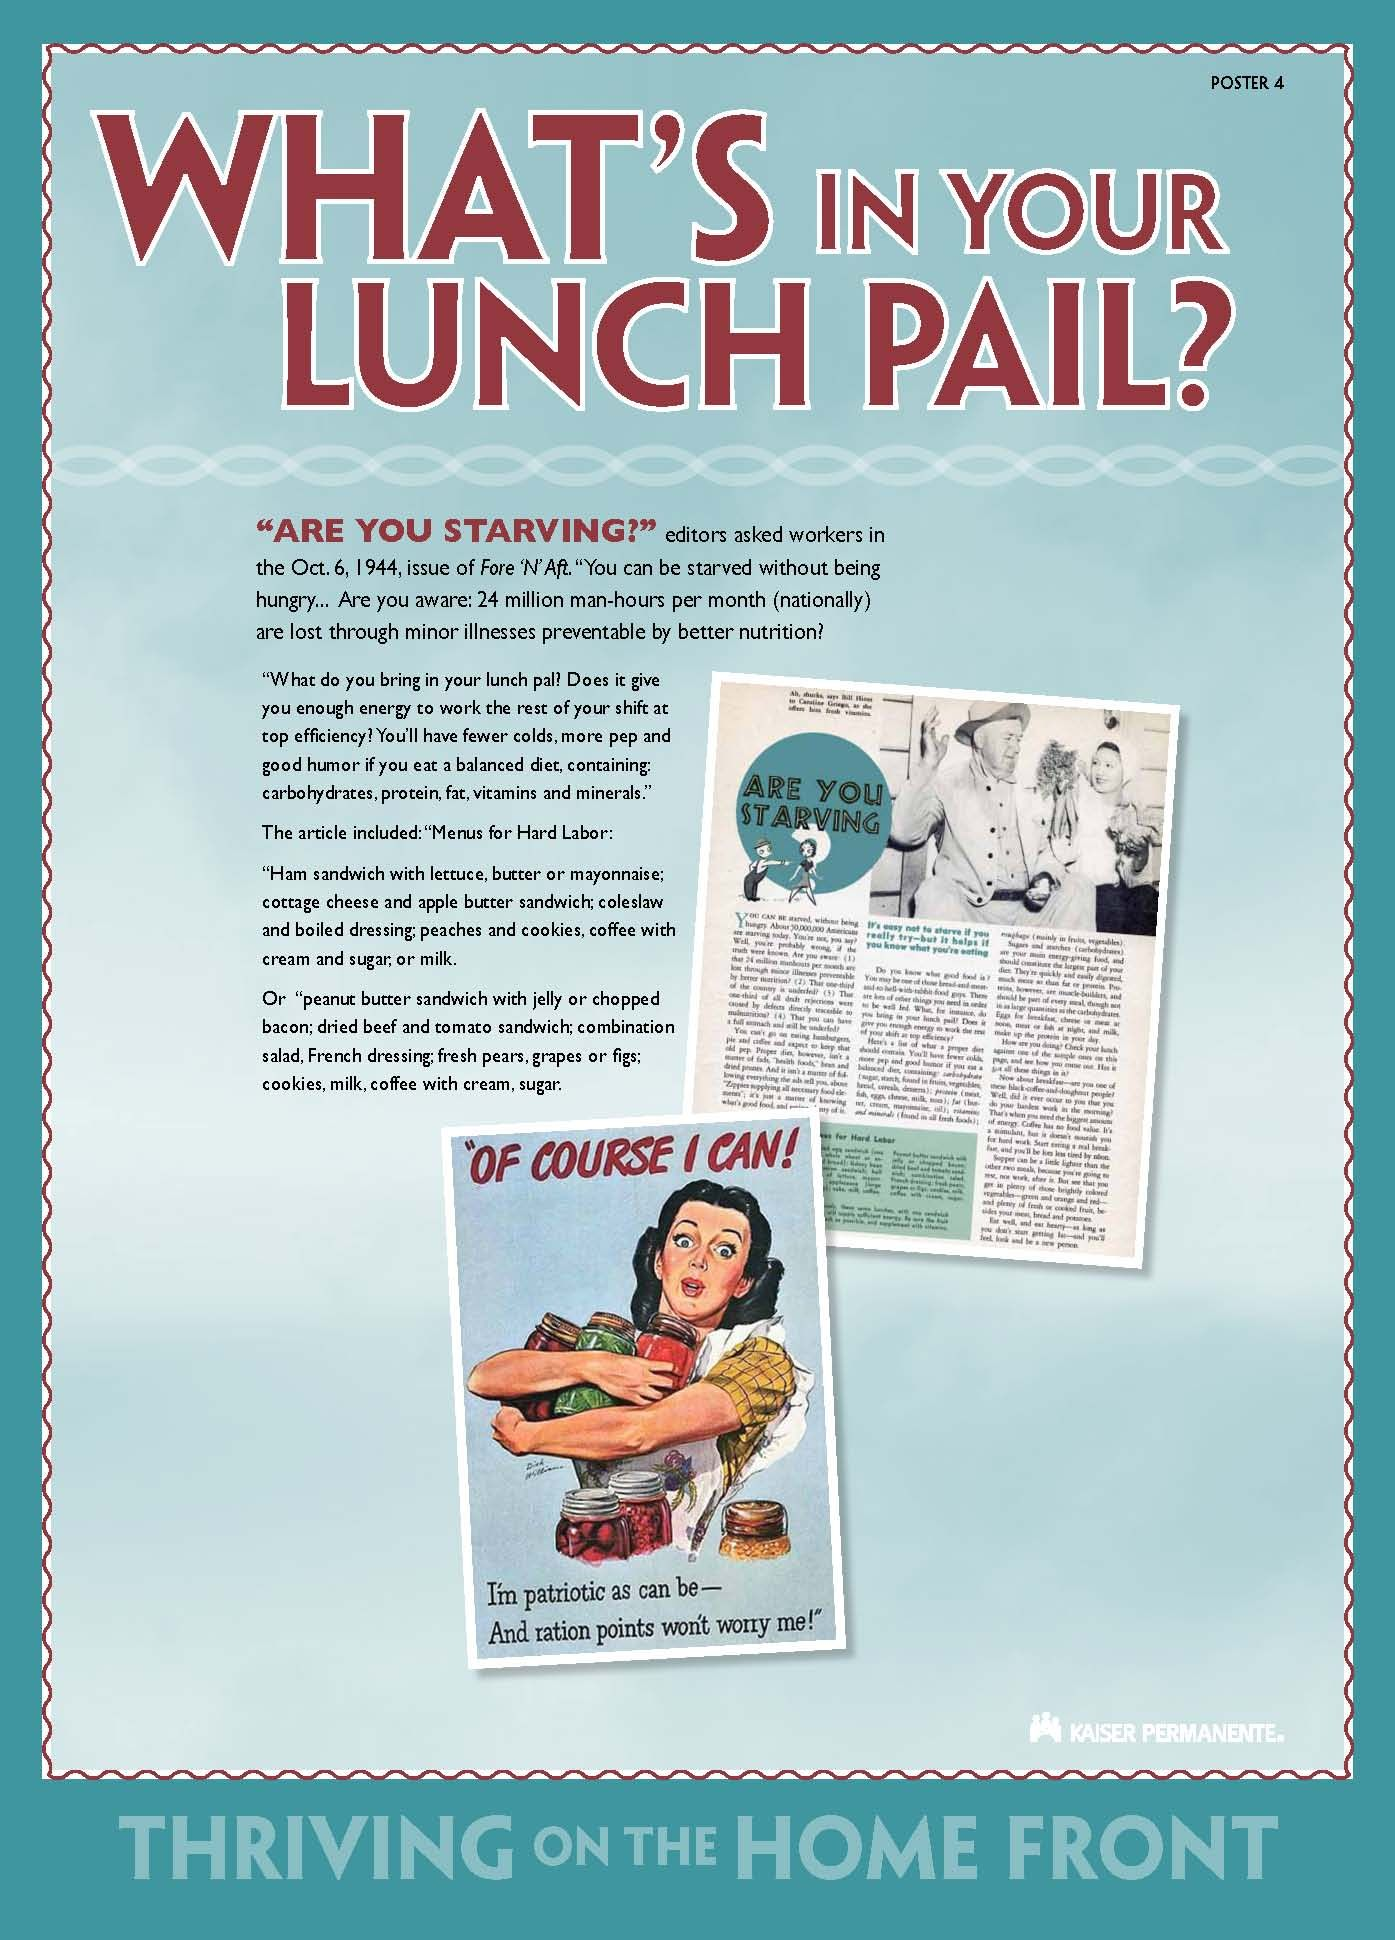 Google Image Result For Http Www Kaiserpermanentehistory Org Wp Content Uploa Nutrition Vintage Advertising Signs Food Facts